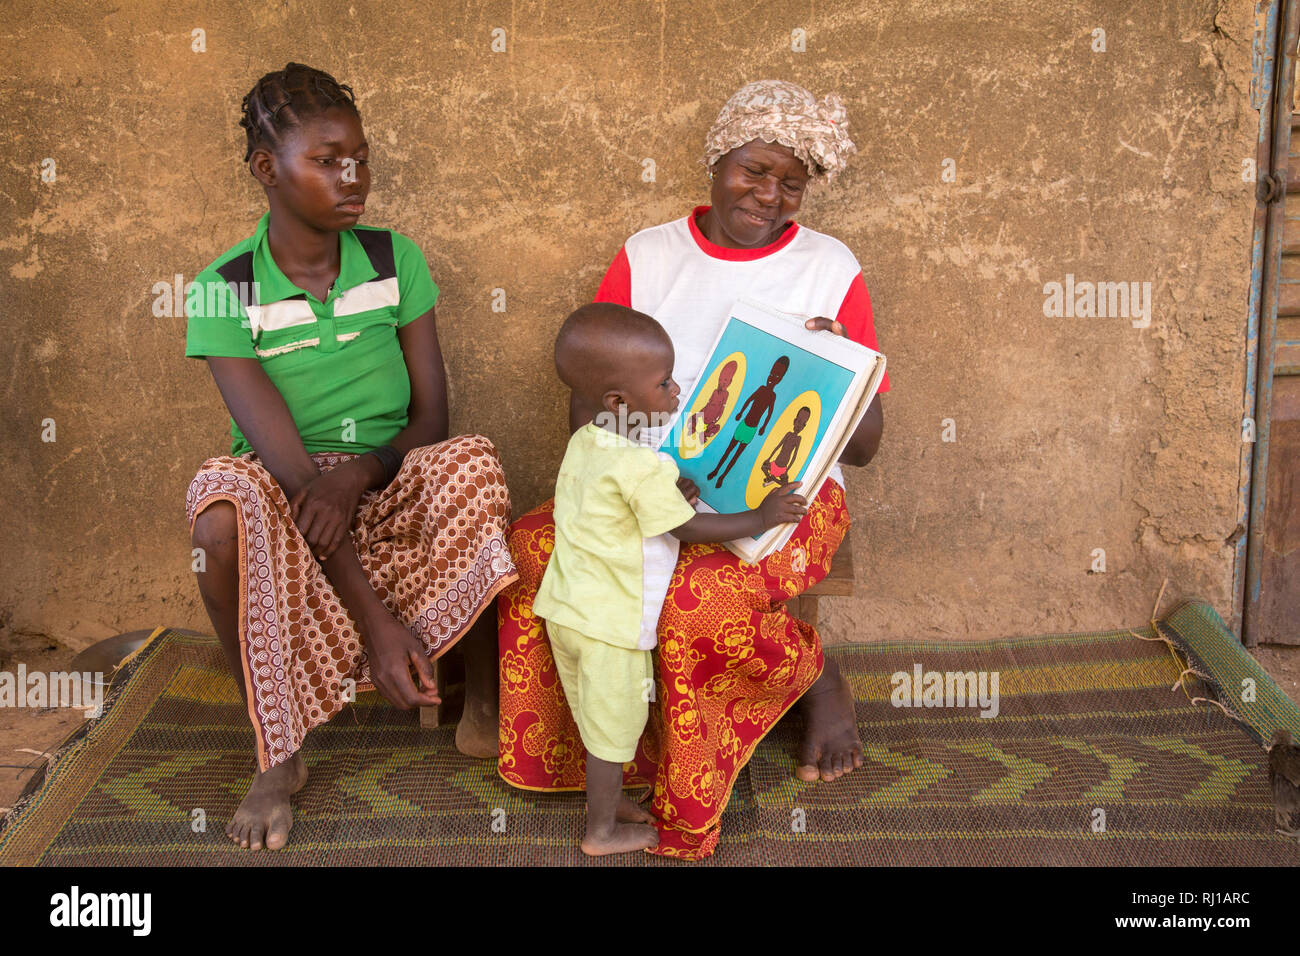 Samba village, Yako Province, Burkina Faso: Abzetta Sondo, 19, and her child suffering from acute malnutrition, get instruction from Helene Pagoundba, nutrition education committee member. Stock Photo